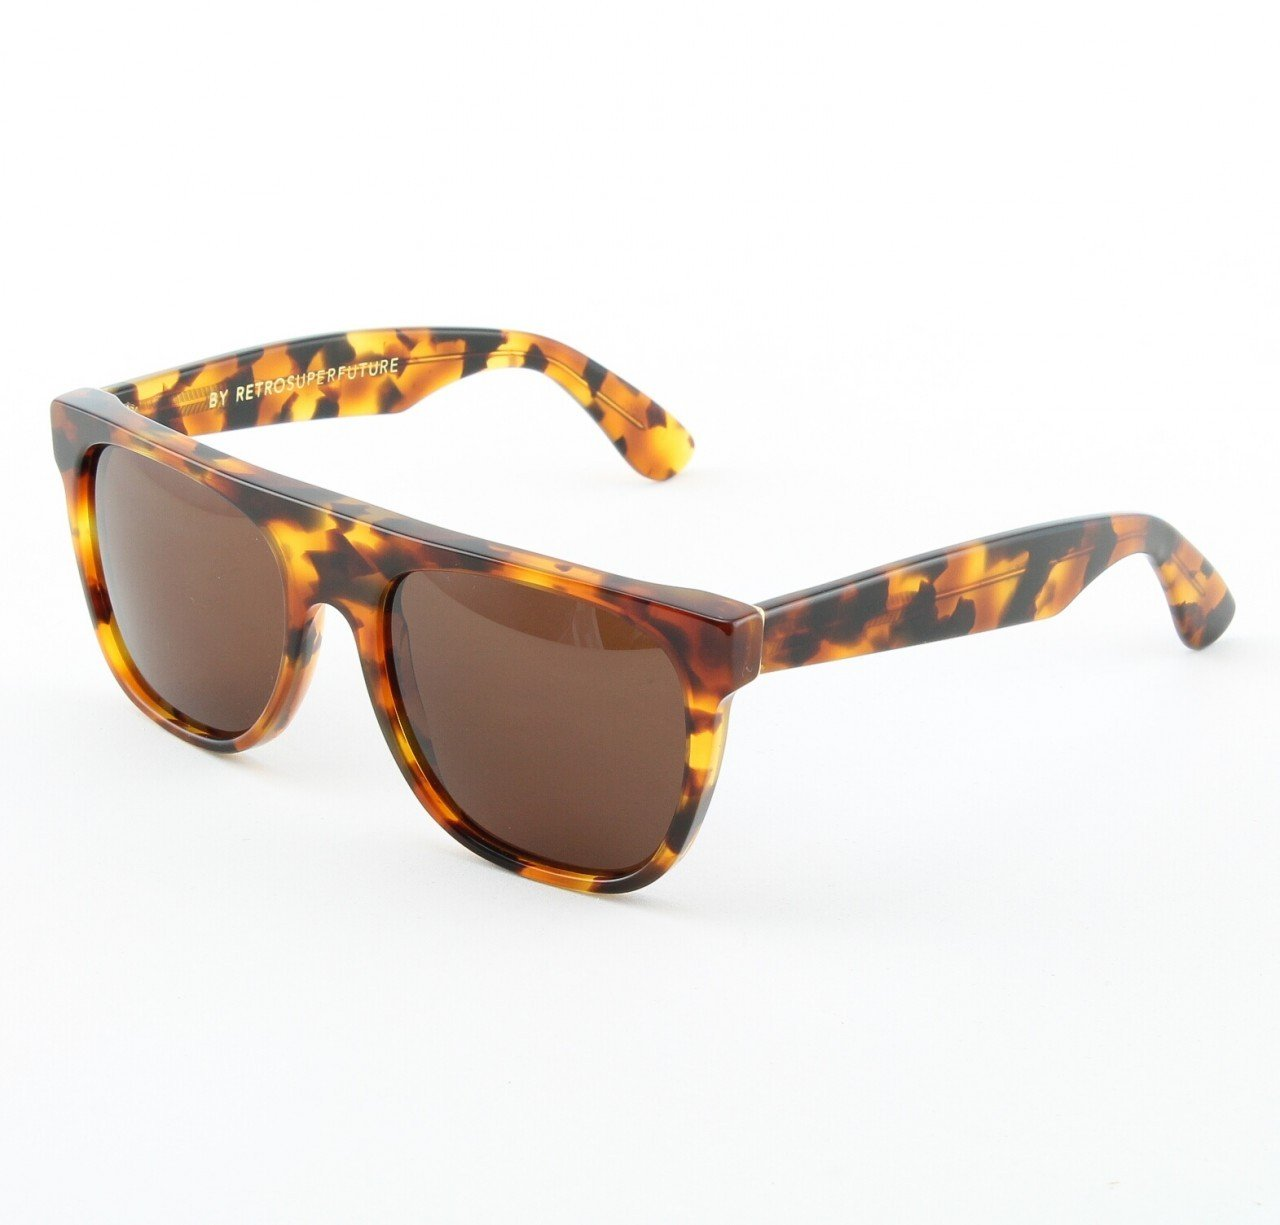 Super Flat Top 850/3T Sunglasses Dark Havana with Brown Zeiss Lenses by RETROSUPERFUTURE